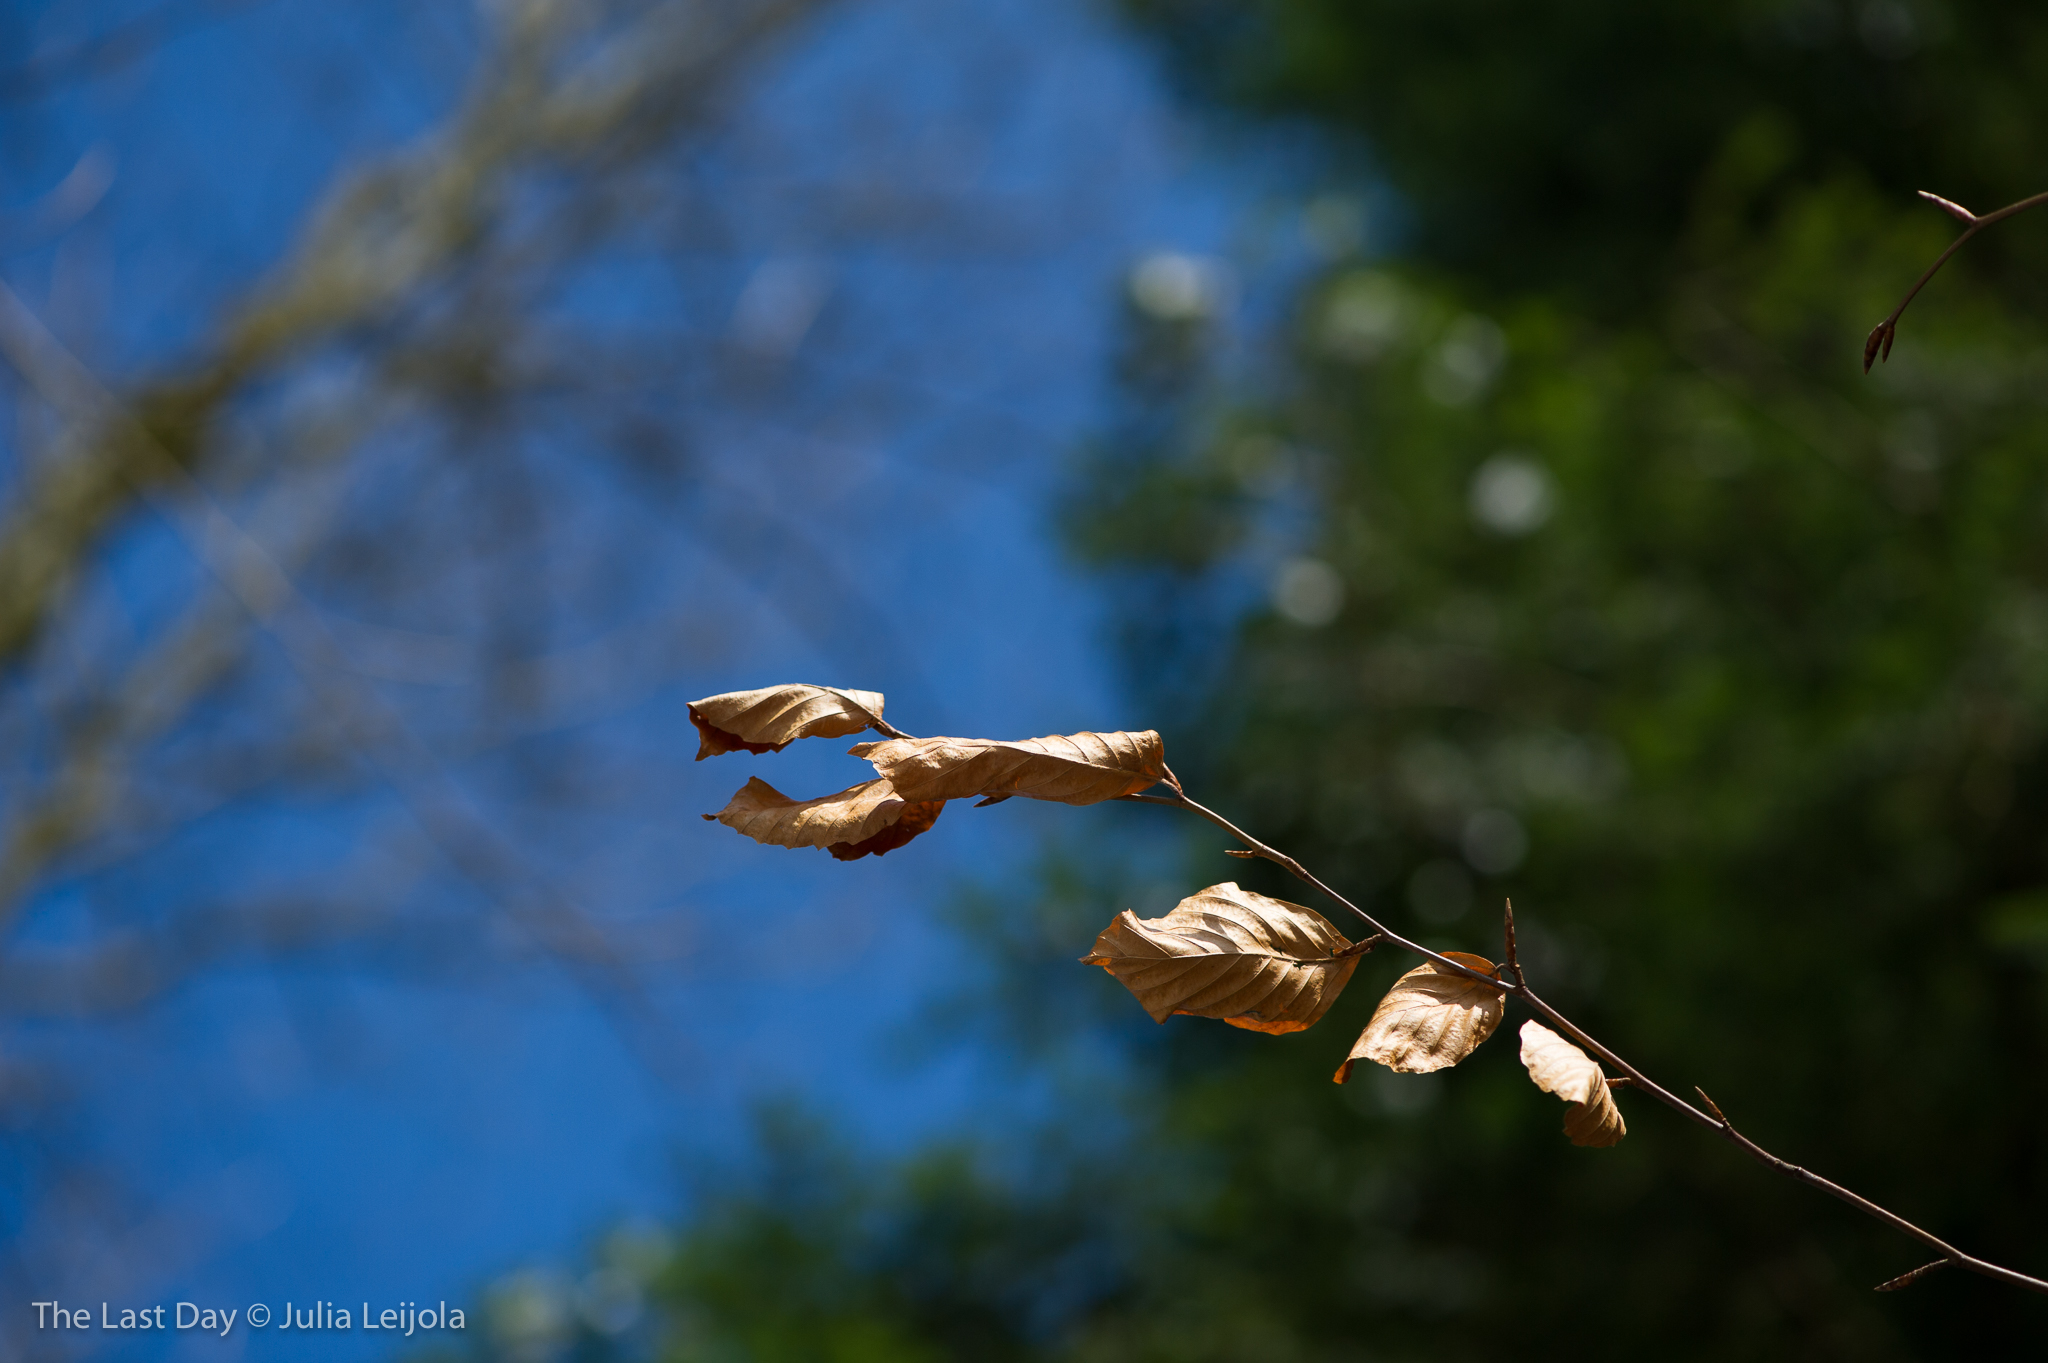 A handful of dried up leaves hang onto a bare branch.